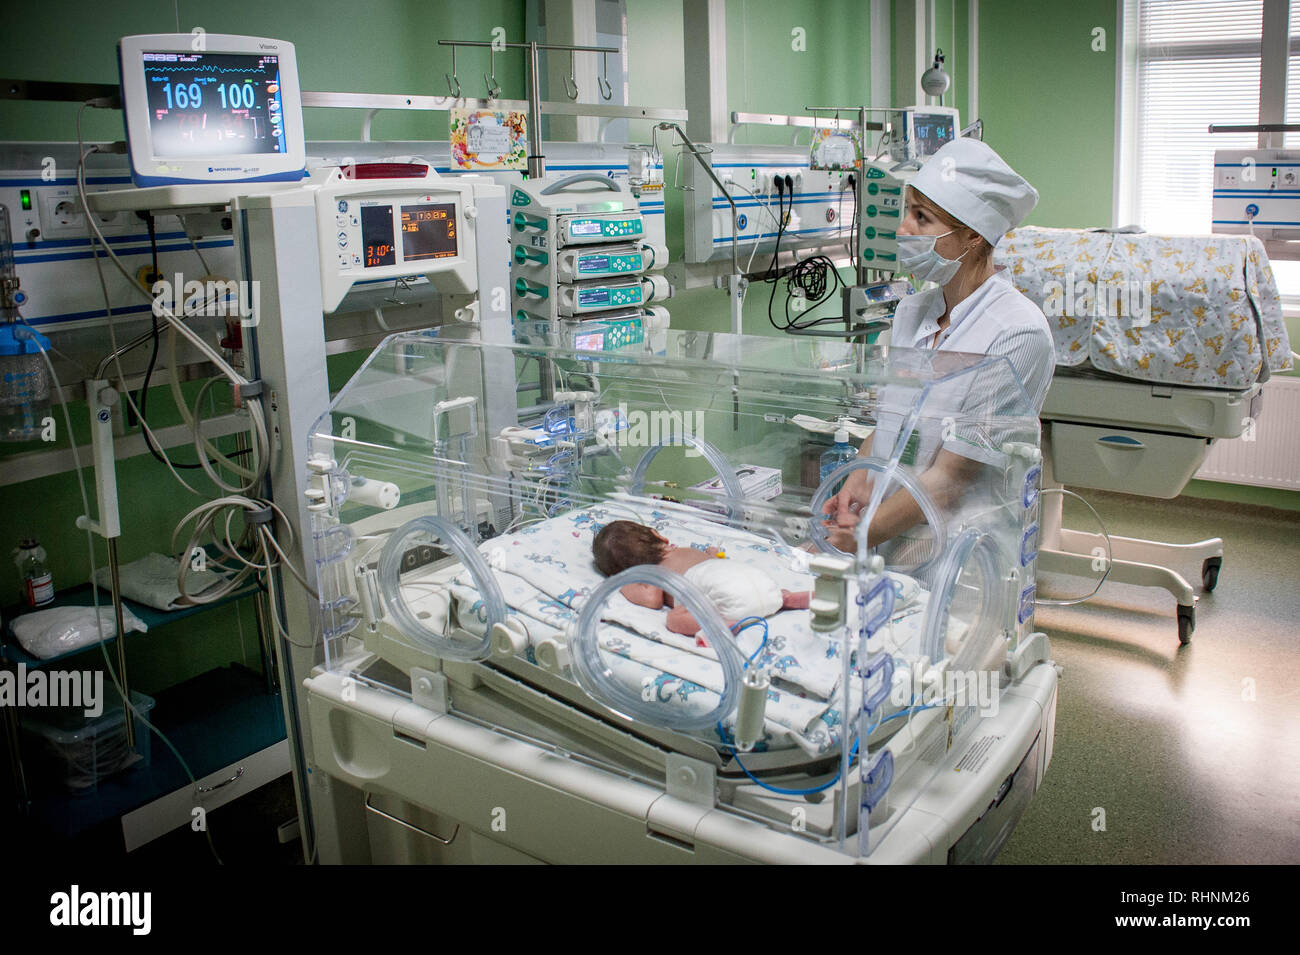 Low Birth Weight Babies Stock Photos & Low Birth Weight